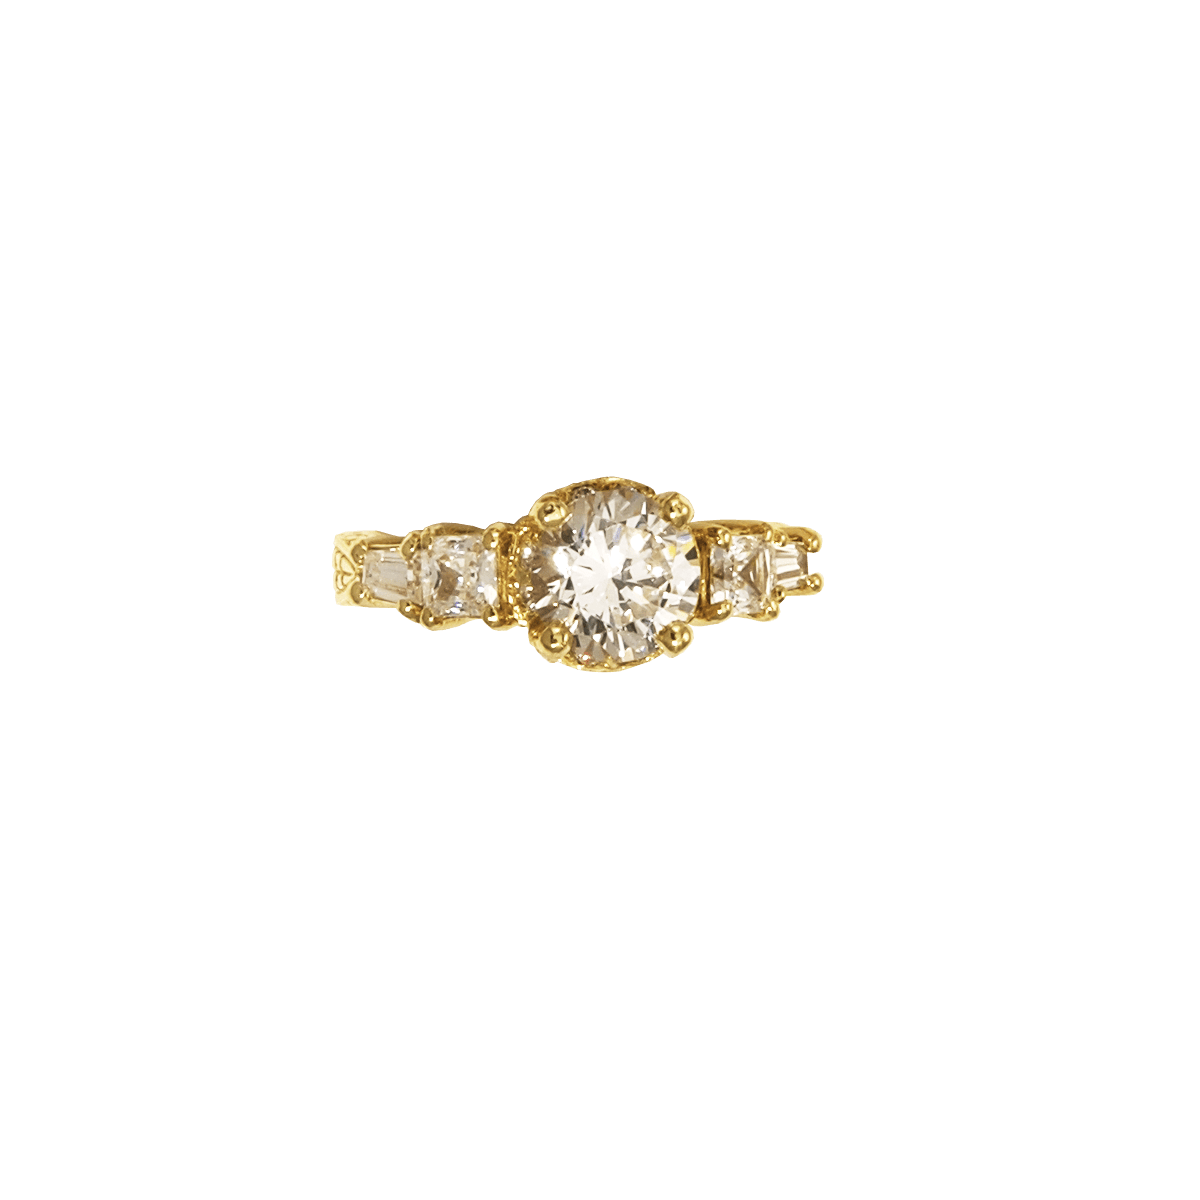 CHRIS AIRE ENGAGEMENT RING